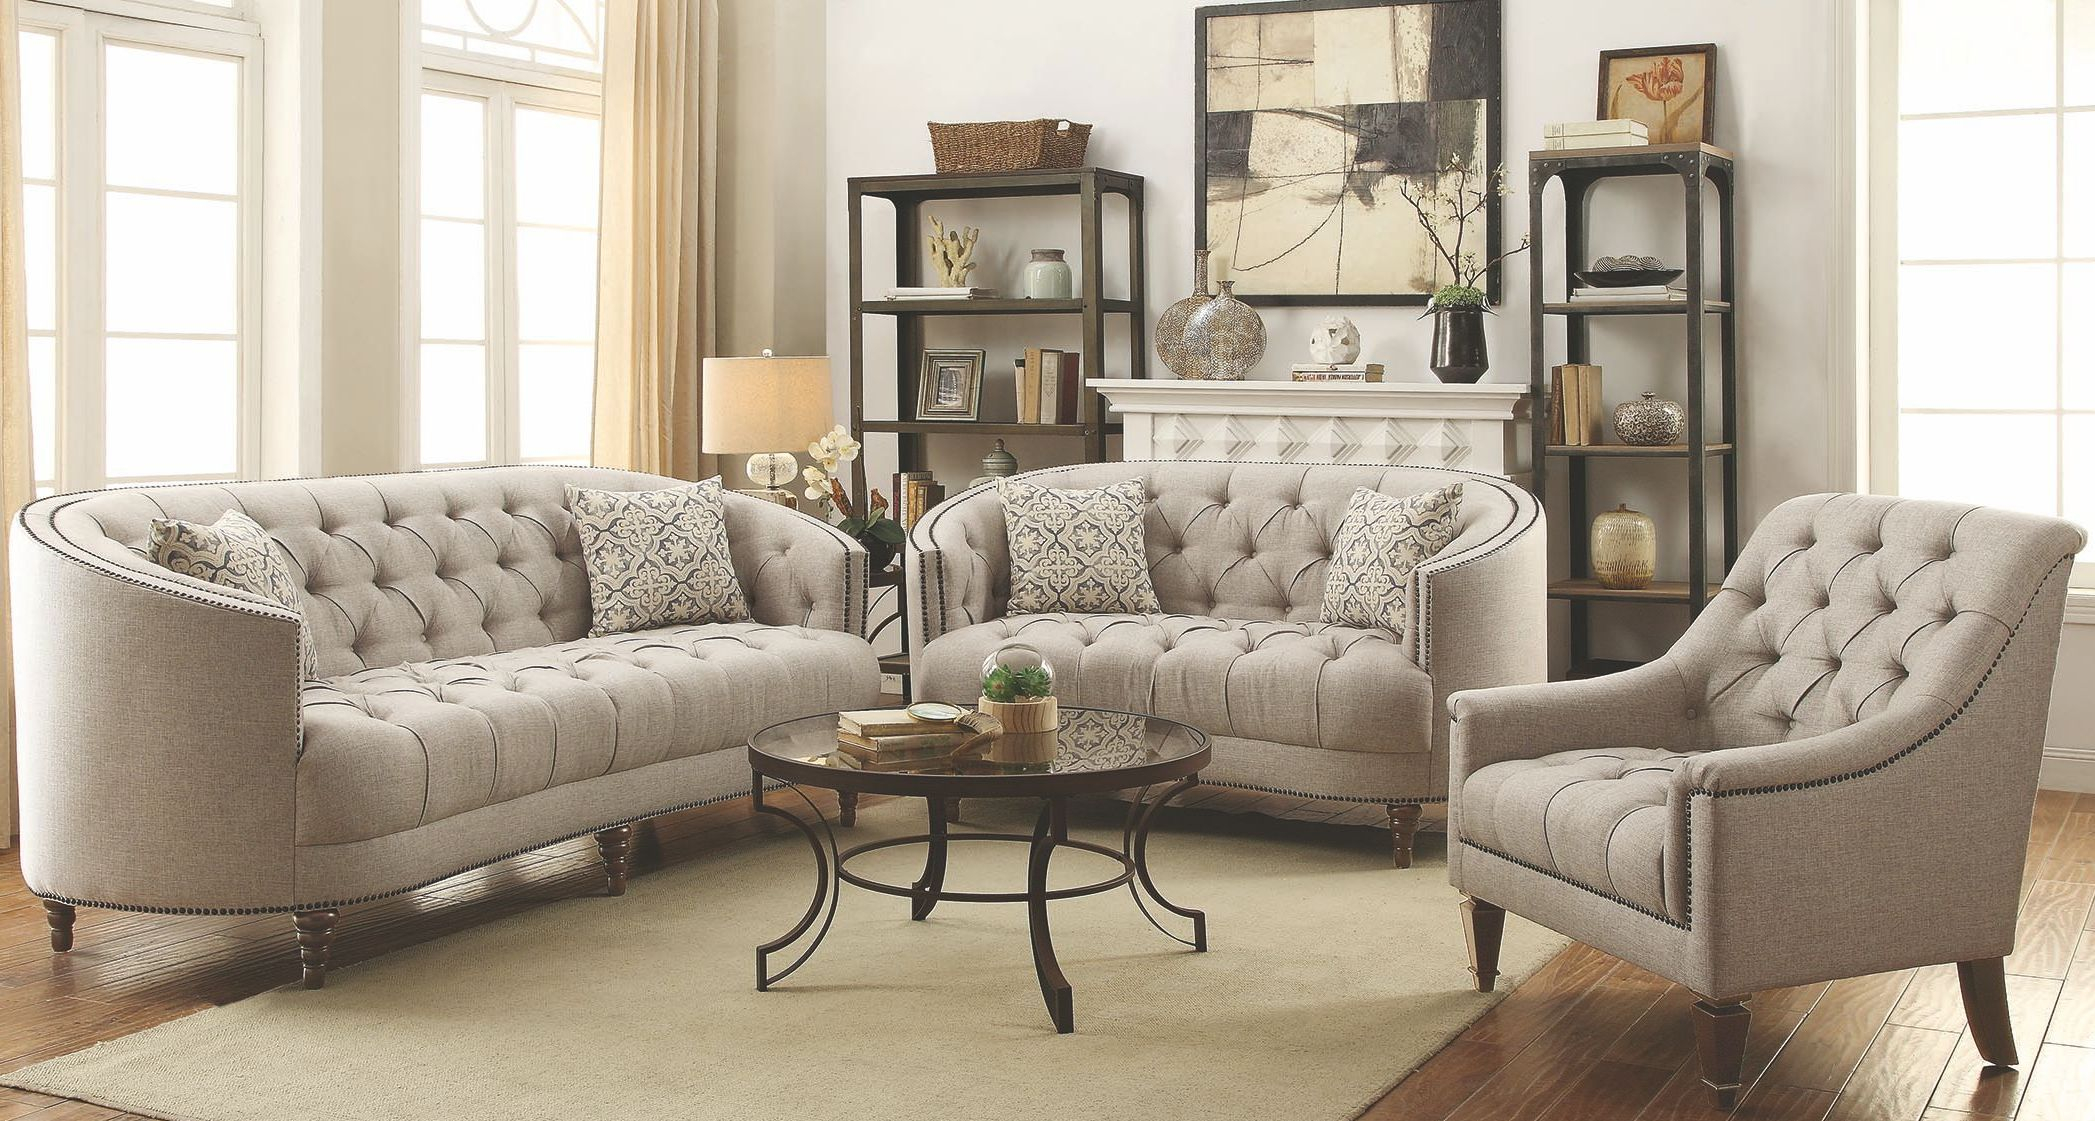 Coaster Avonlea Stone Grey Living Room Set Avonlea Collection 15 within Living Room Set Deals